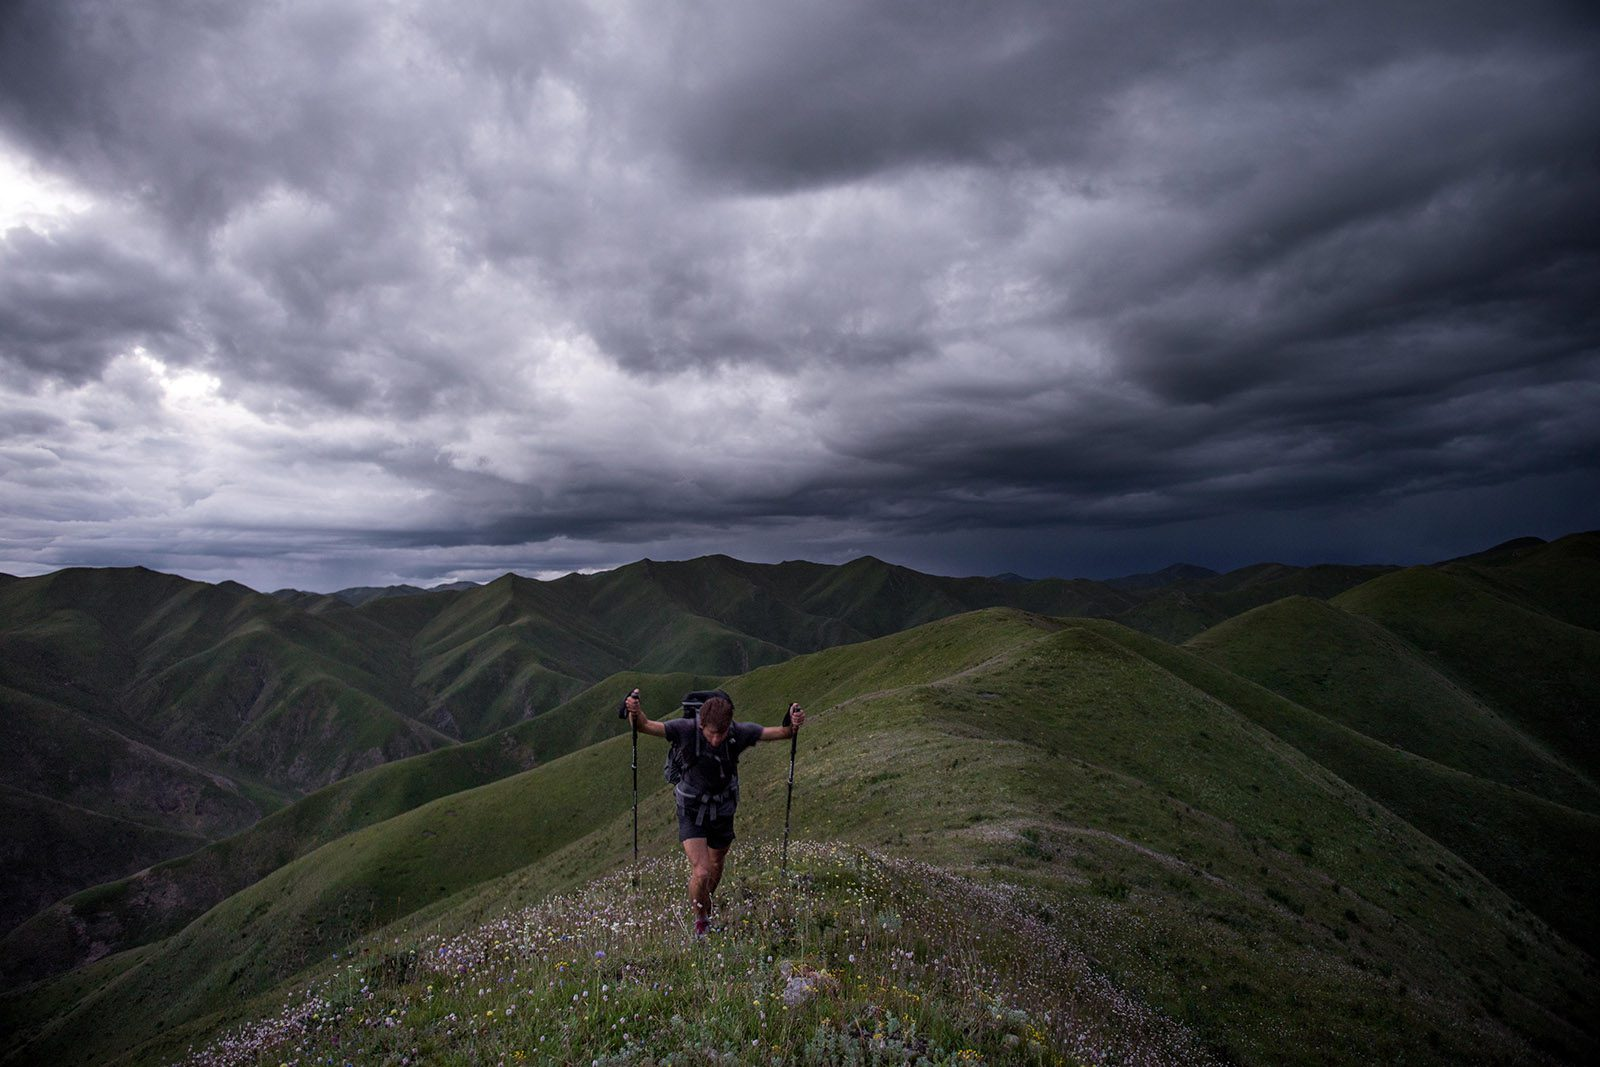 Kyle Obermann hikes on a mountain with mountains and dark clouds in the background.